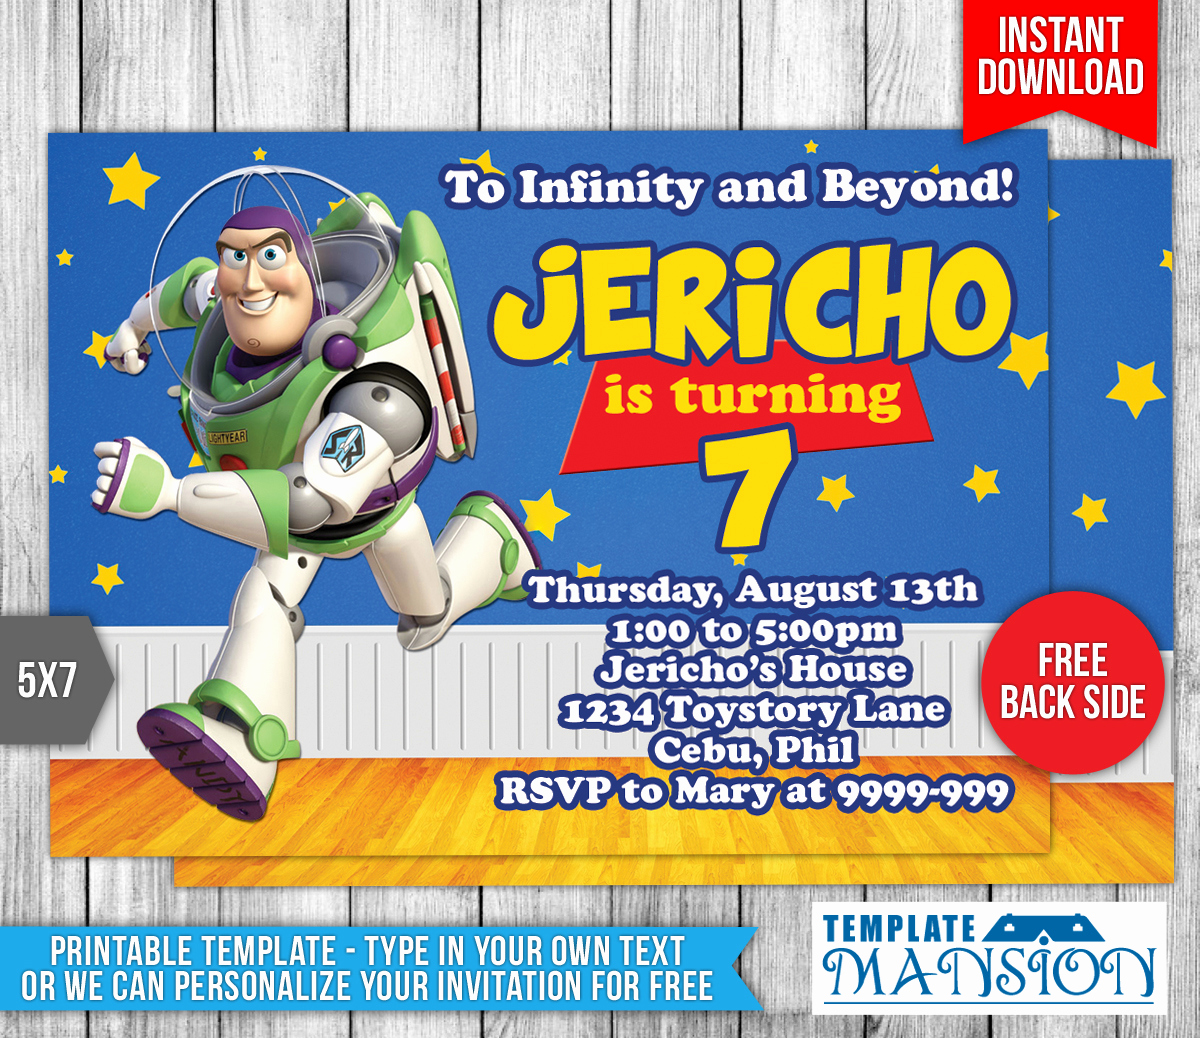 Toy Story Invitation Templates New Buzz Lightyear toy Story Birthday Invitation by